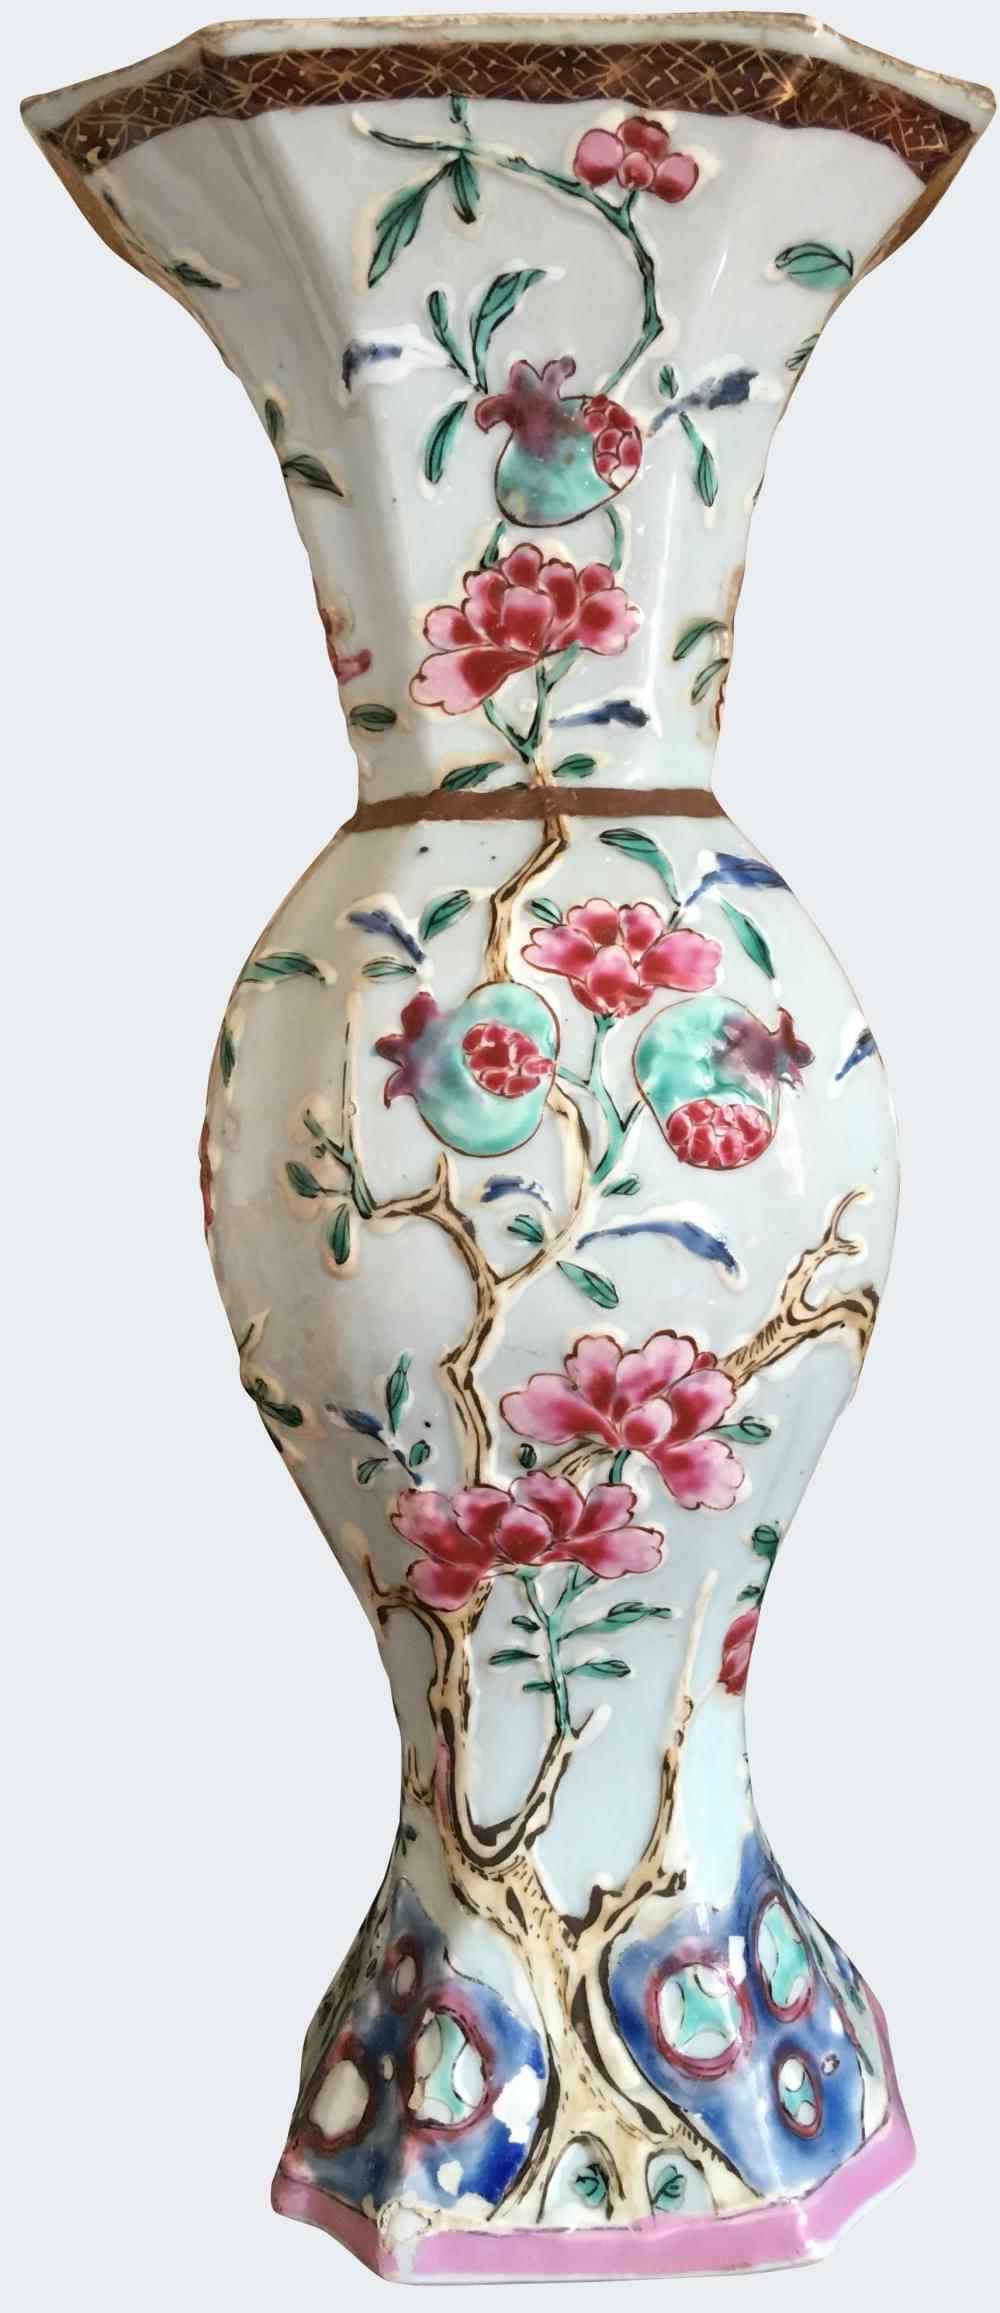 Famille rose Porcelain Late Yongzheng (1722-1735), early Qianlong (1735-1795), China